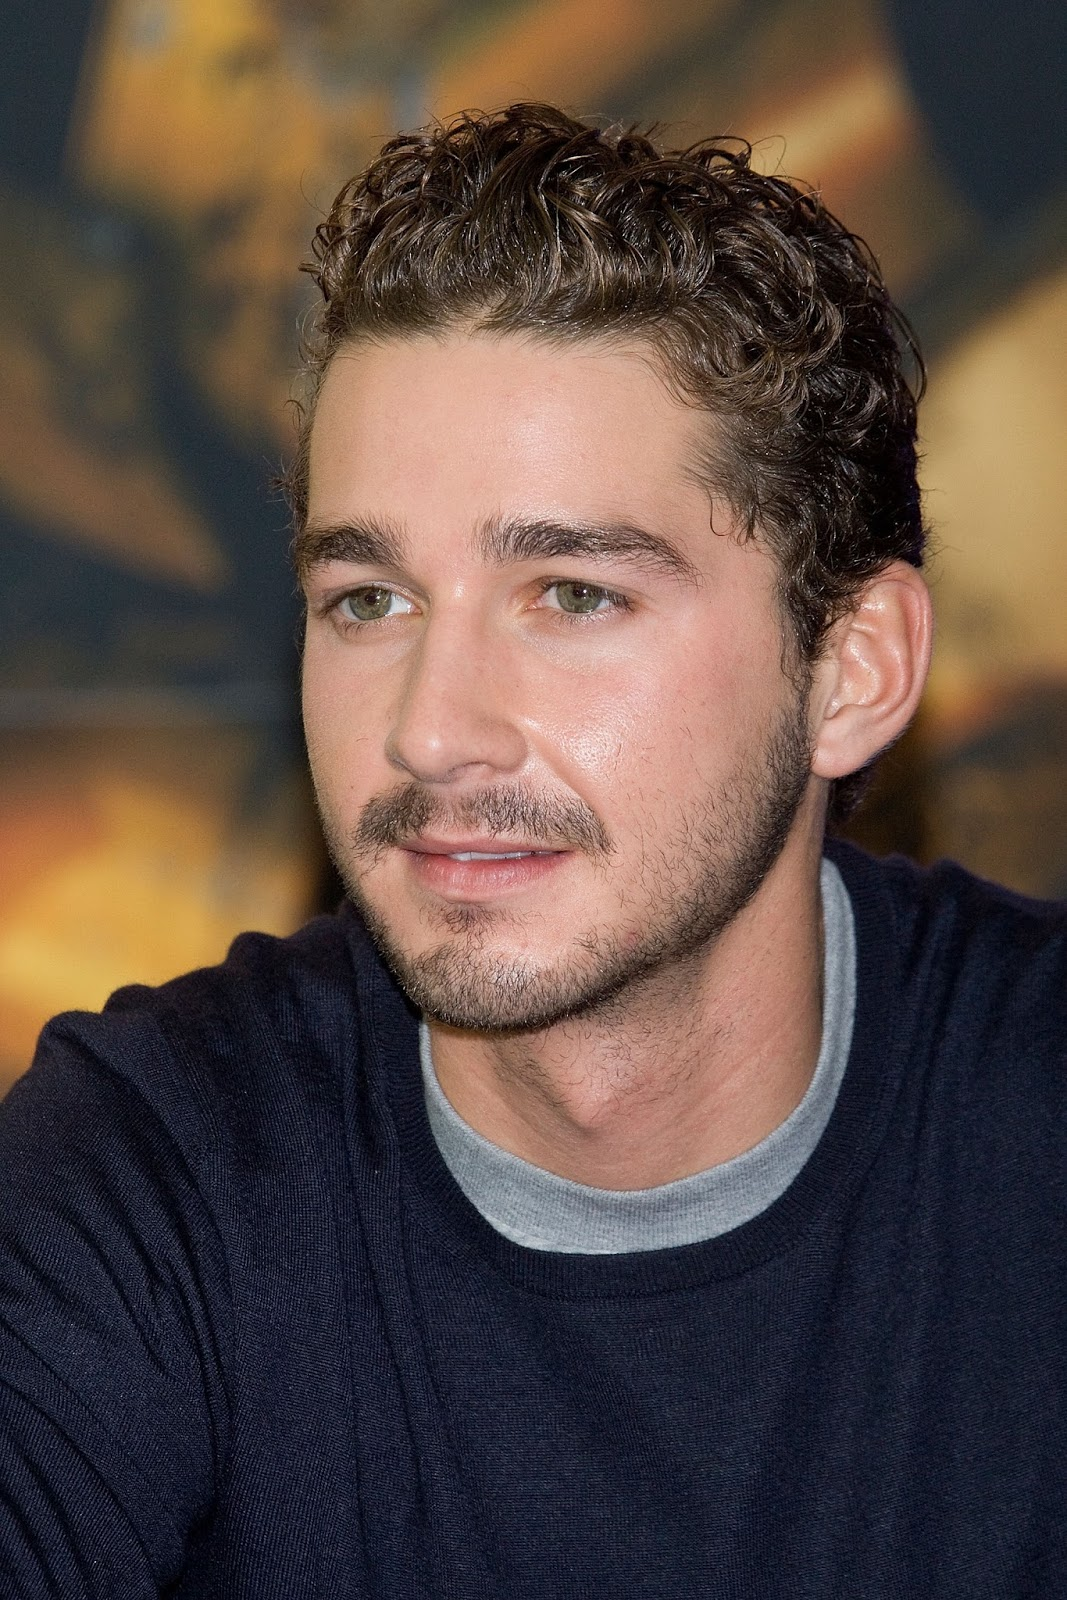 HD Photos of Shia LaBeouf & Megan Fox Promoting Transformers 2 in South Korea